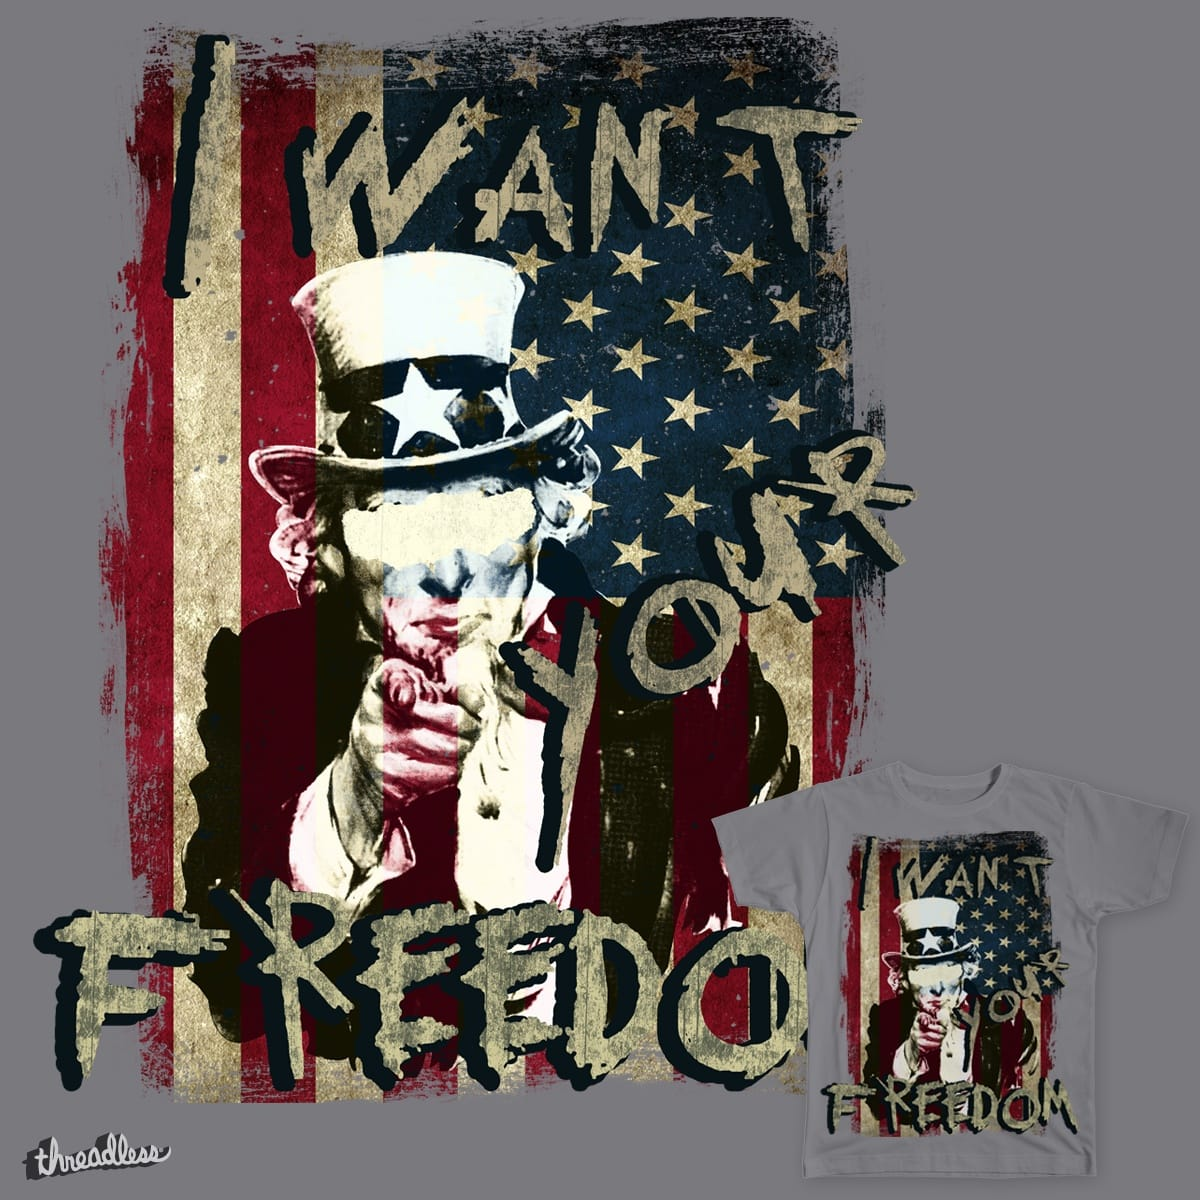 I WANT YOUR FREEDOM by kristinb737 on Threadless